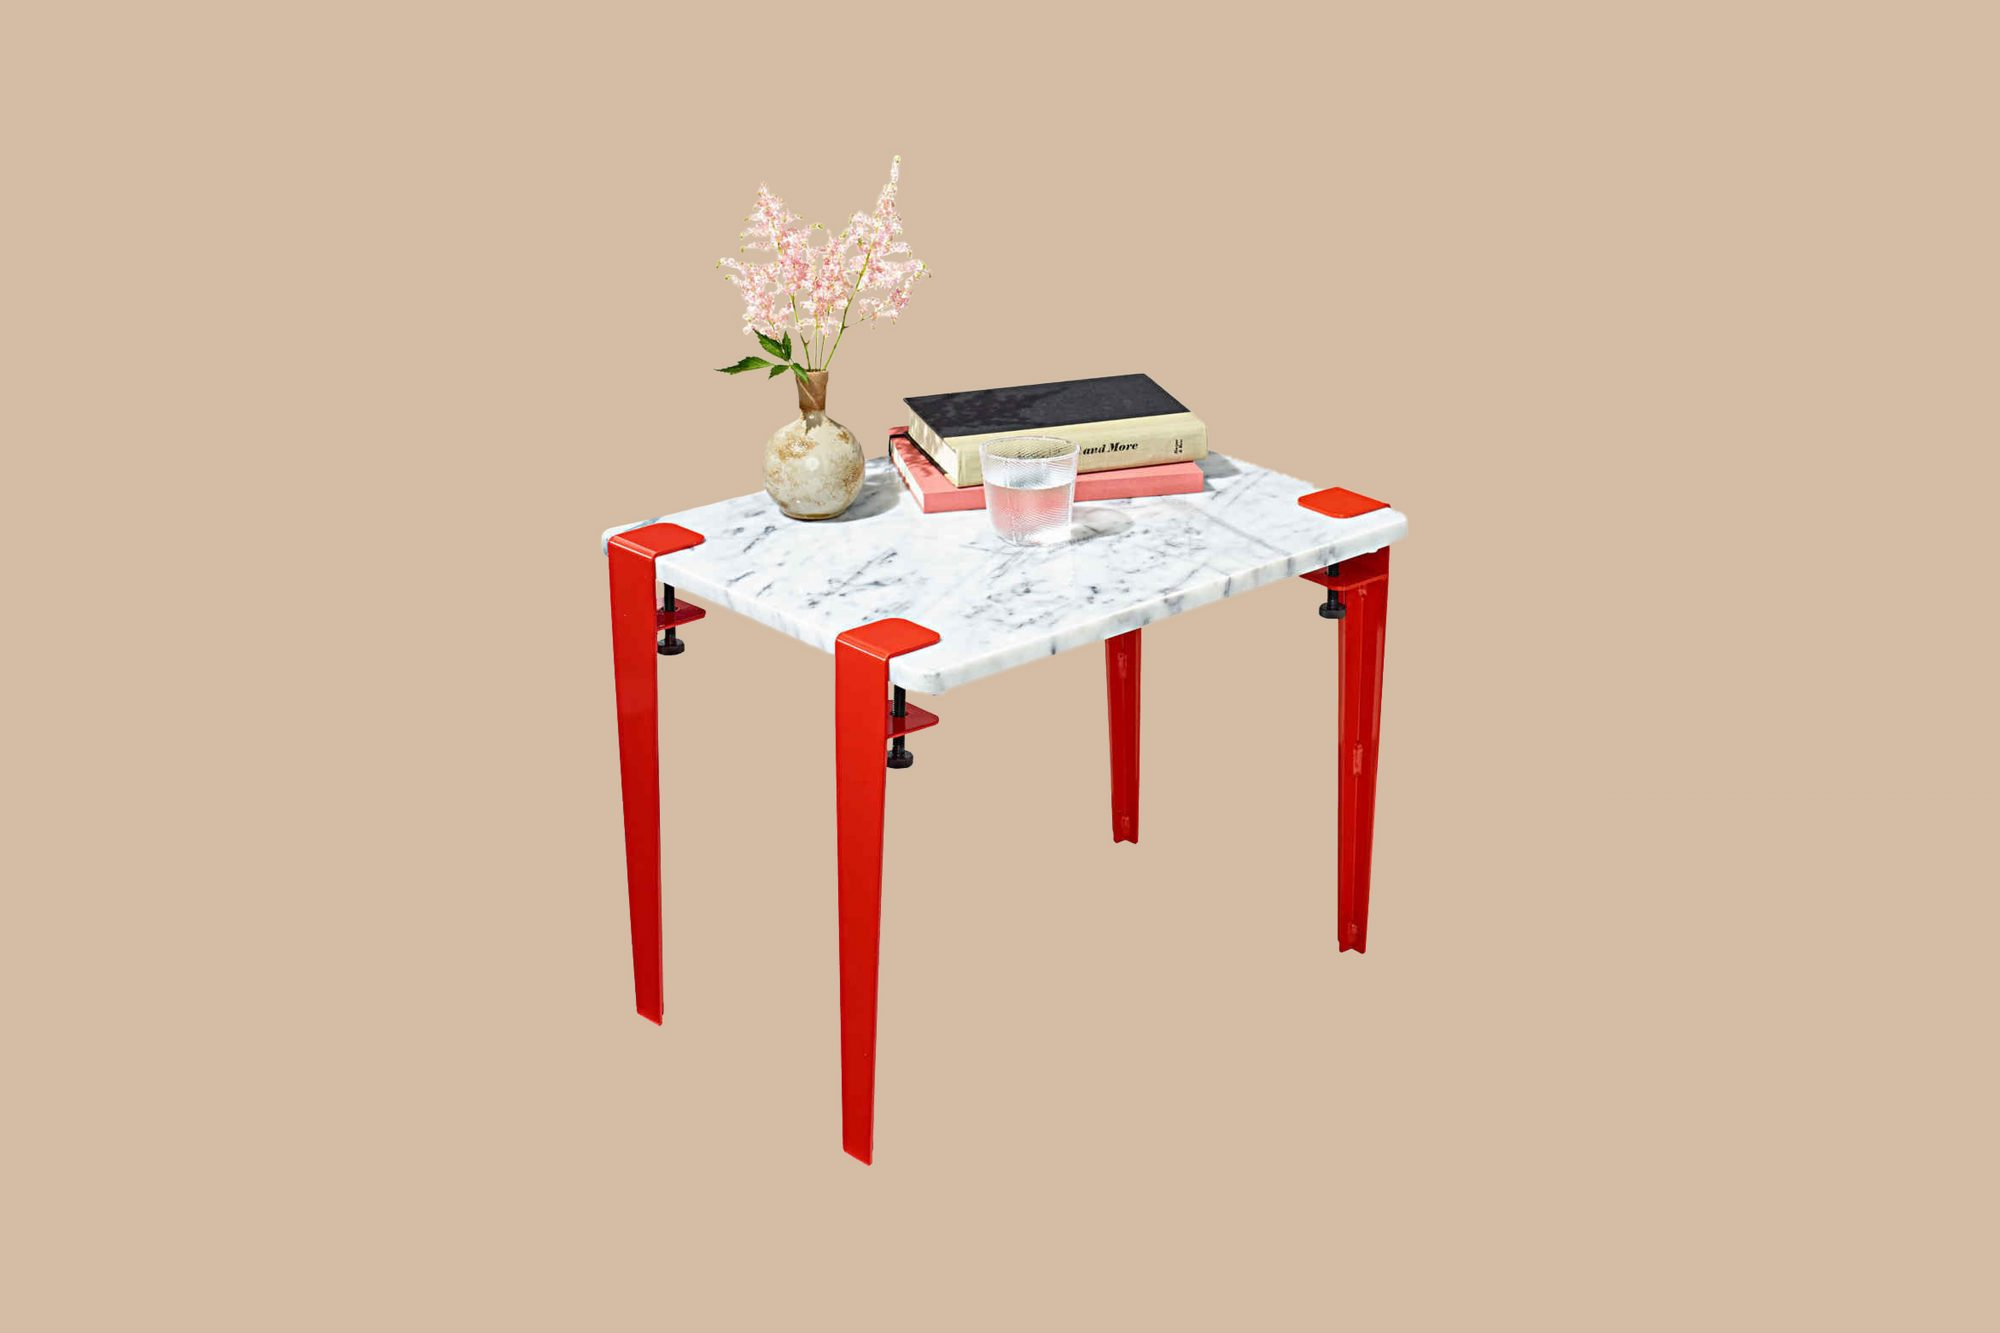 marble table with red legs